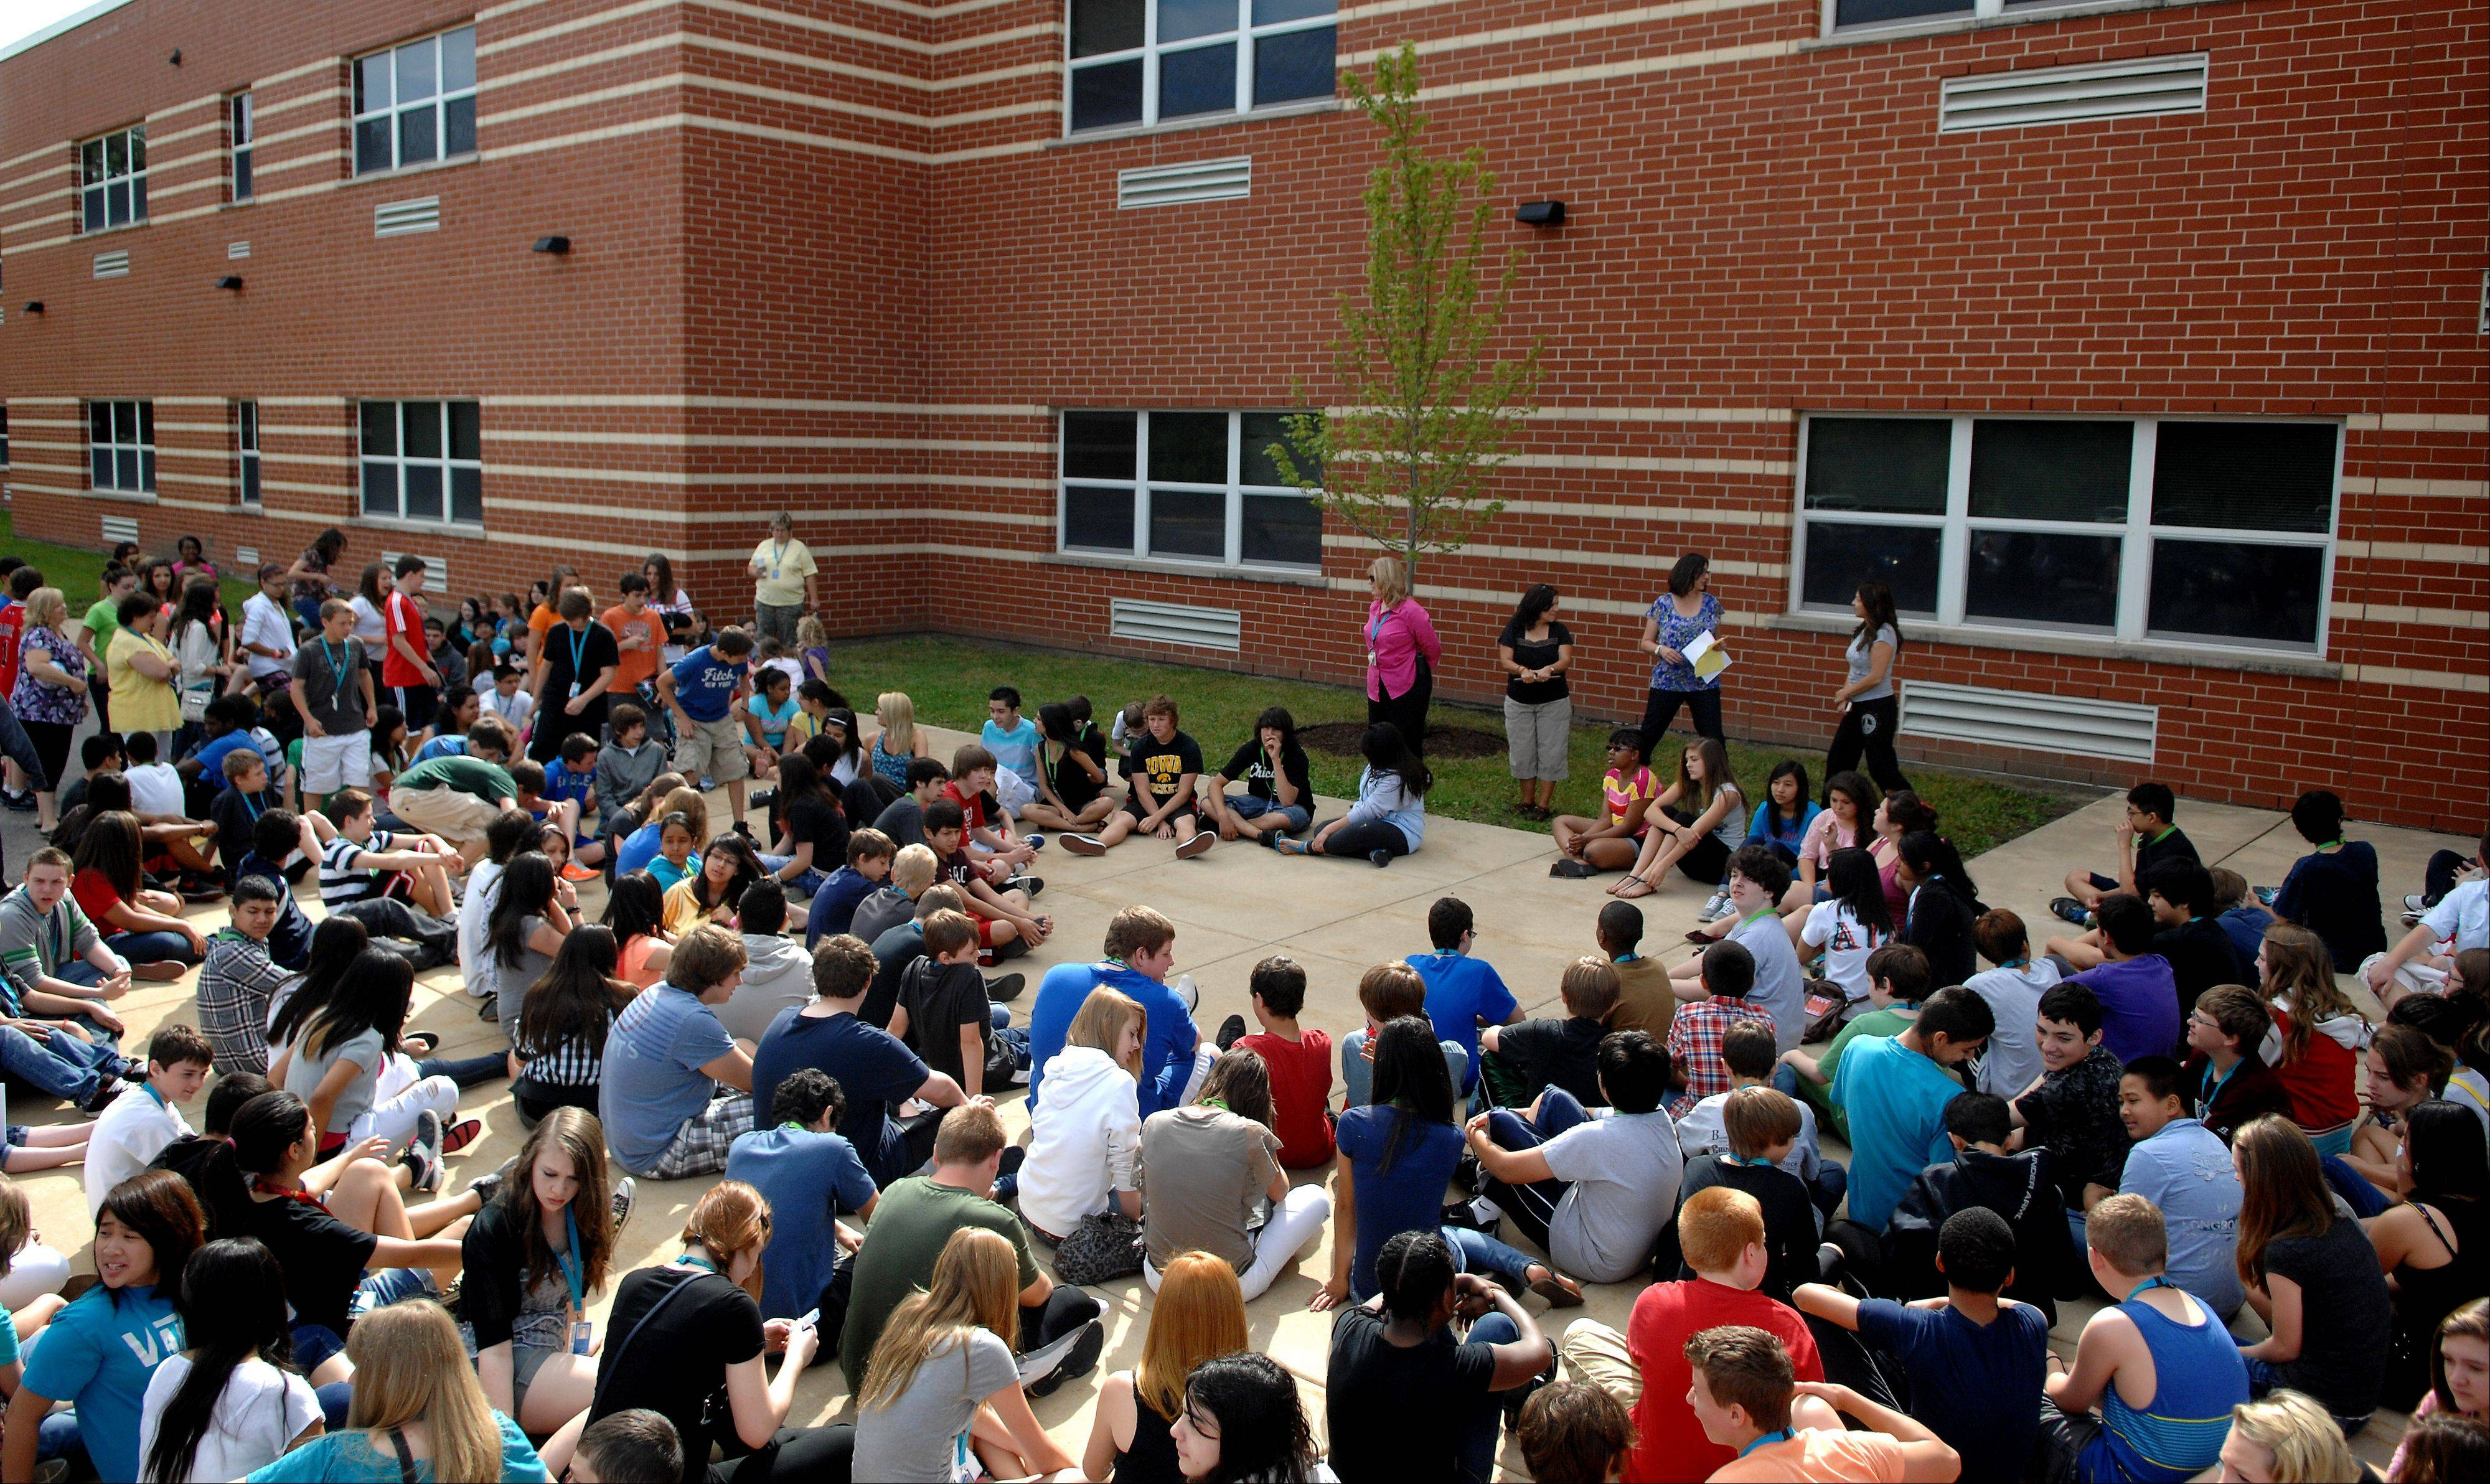 Students and faculty gather for a ceremony Monday for Kenyon Woods Middle School Principal Sue Welu, who is retiring this month. She was the school's first and only principal.